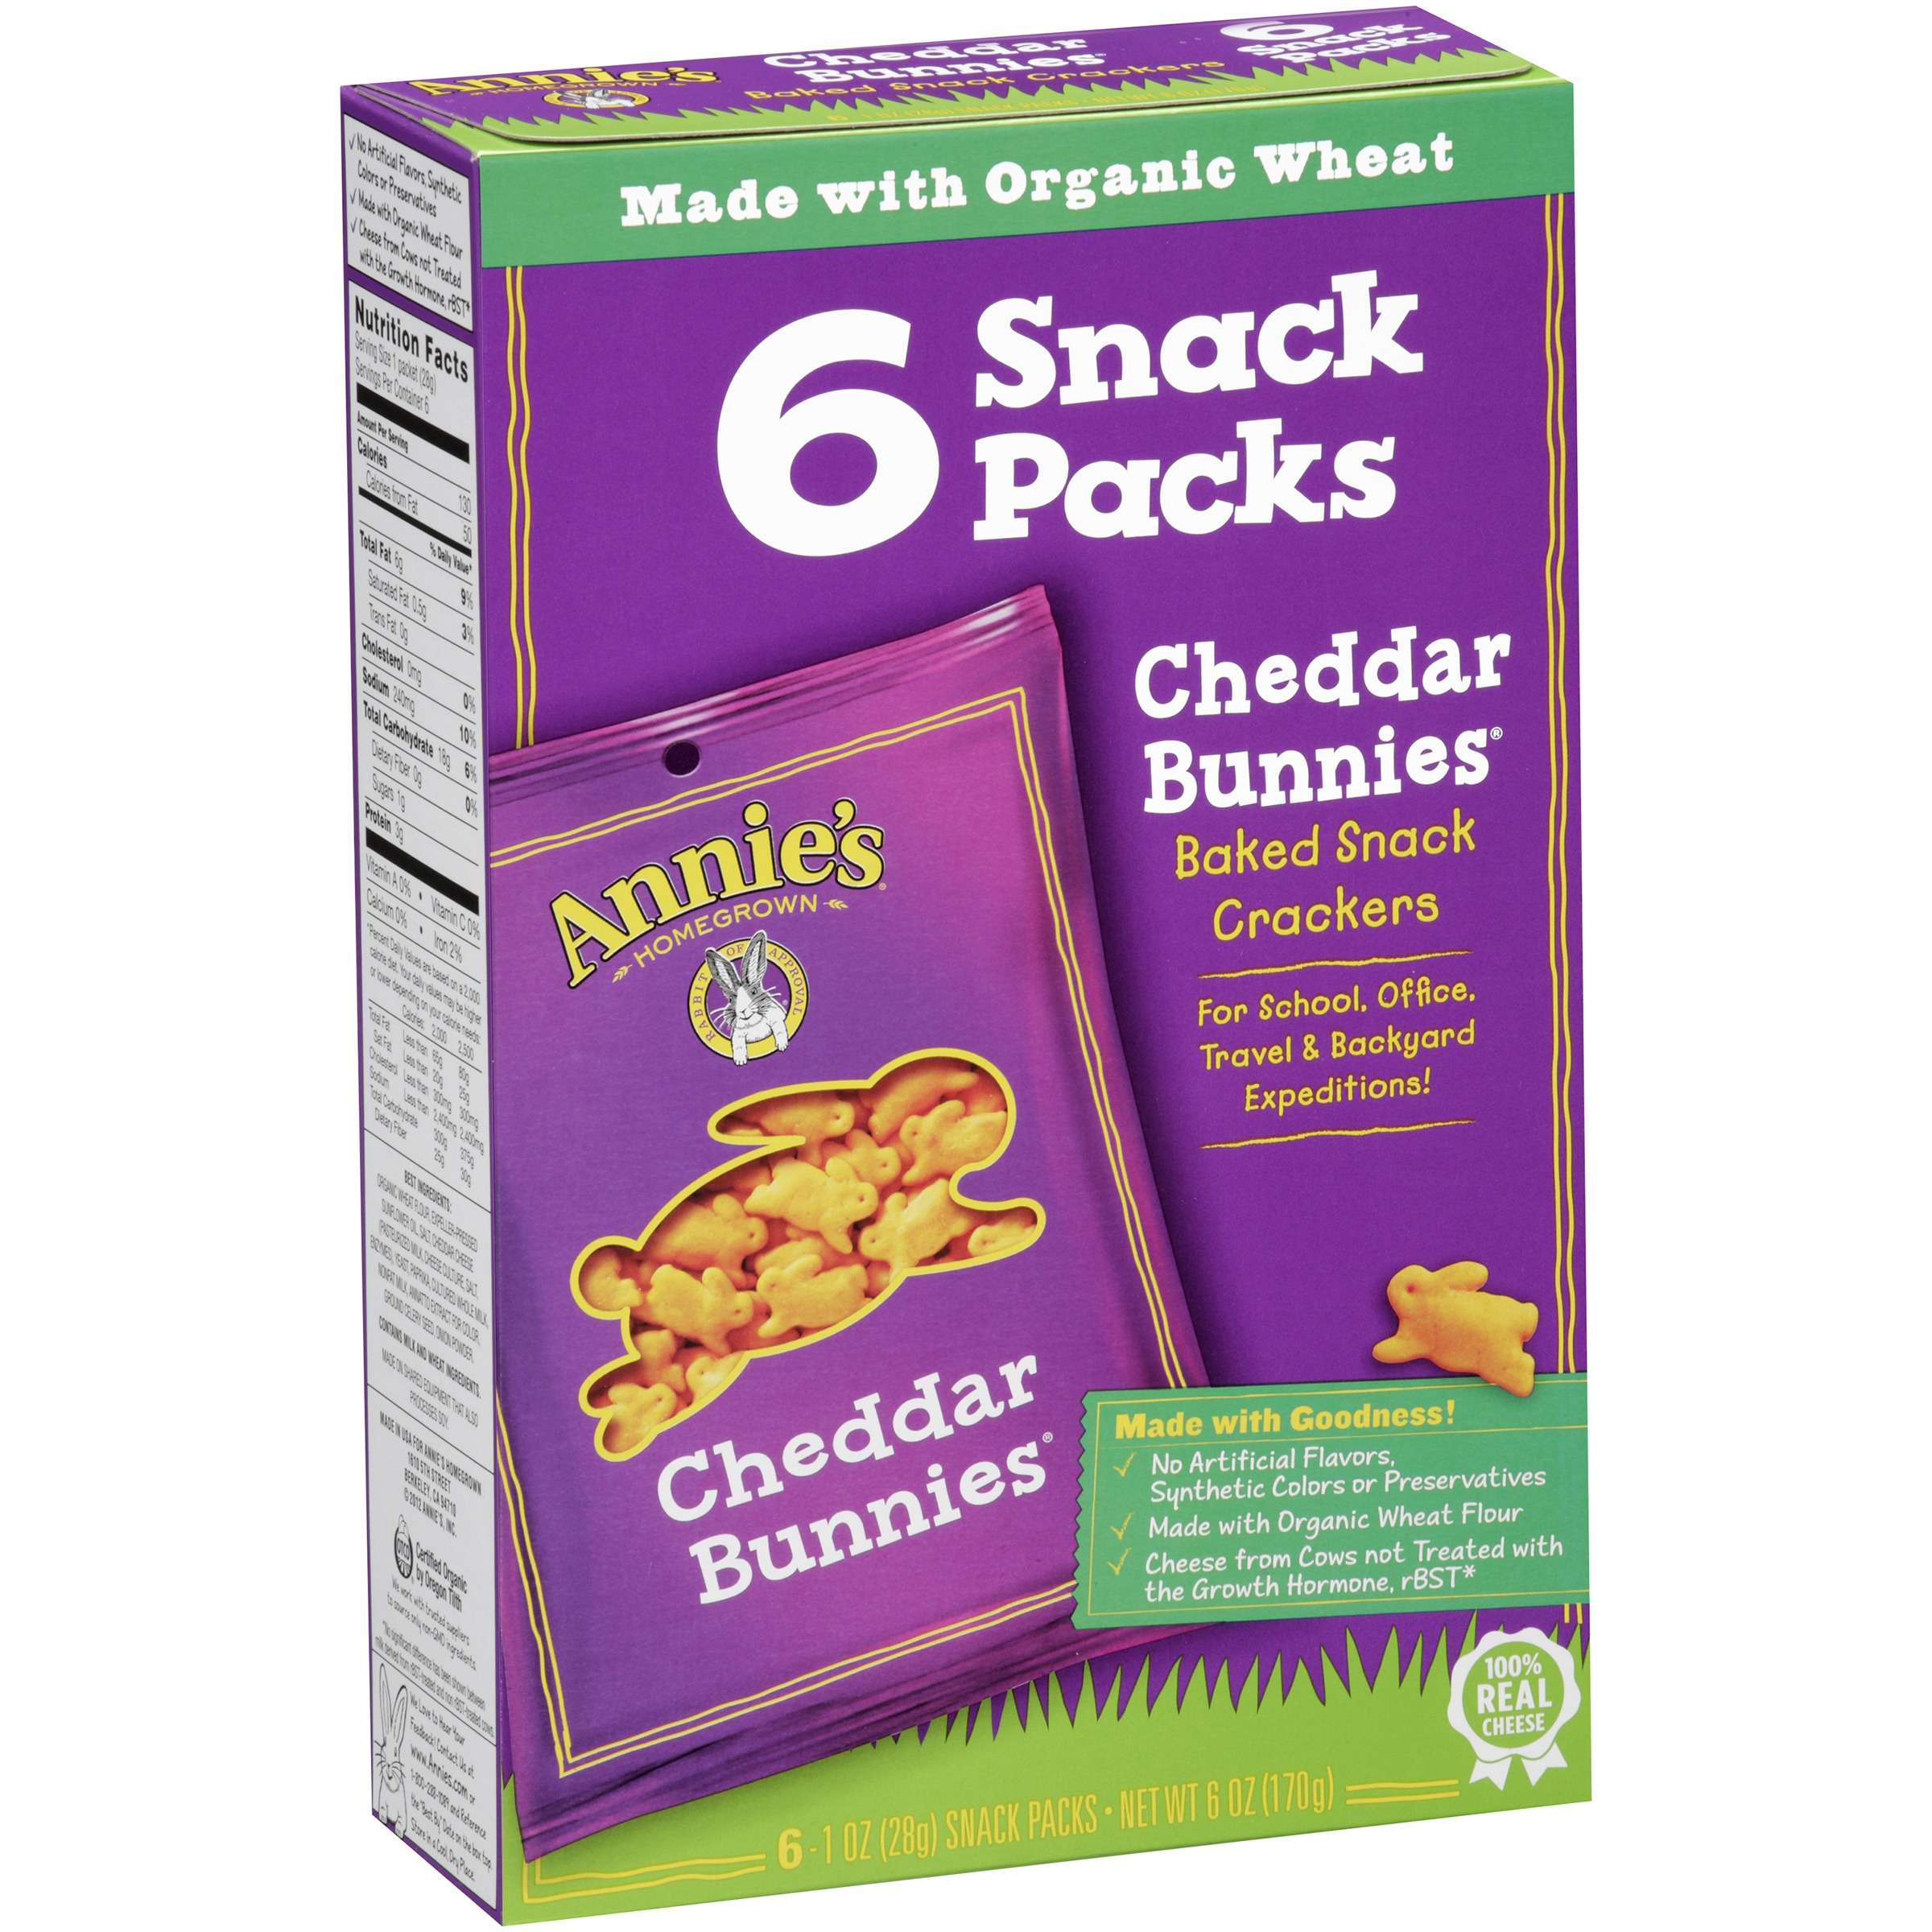 Annie's Homegrown Baked Snack Crackers Cheddar Bunnies 6 CT by Annie's, Inc.